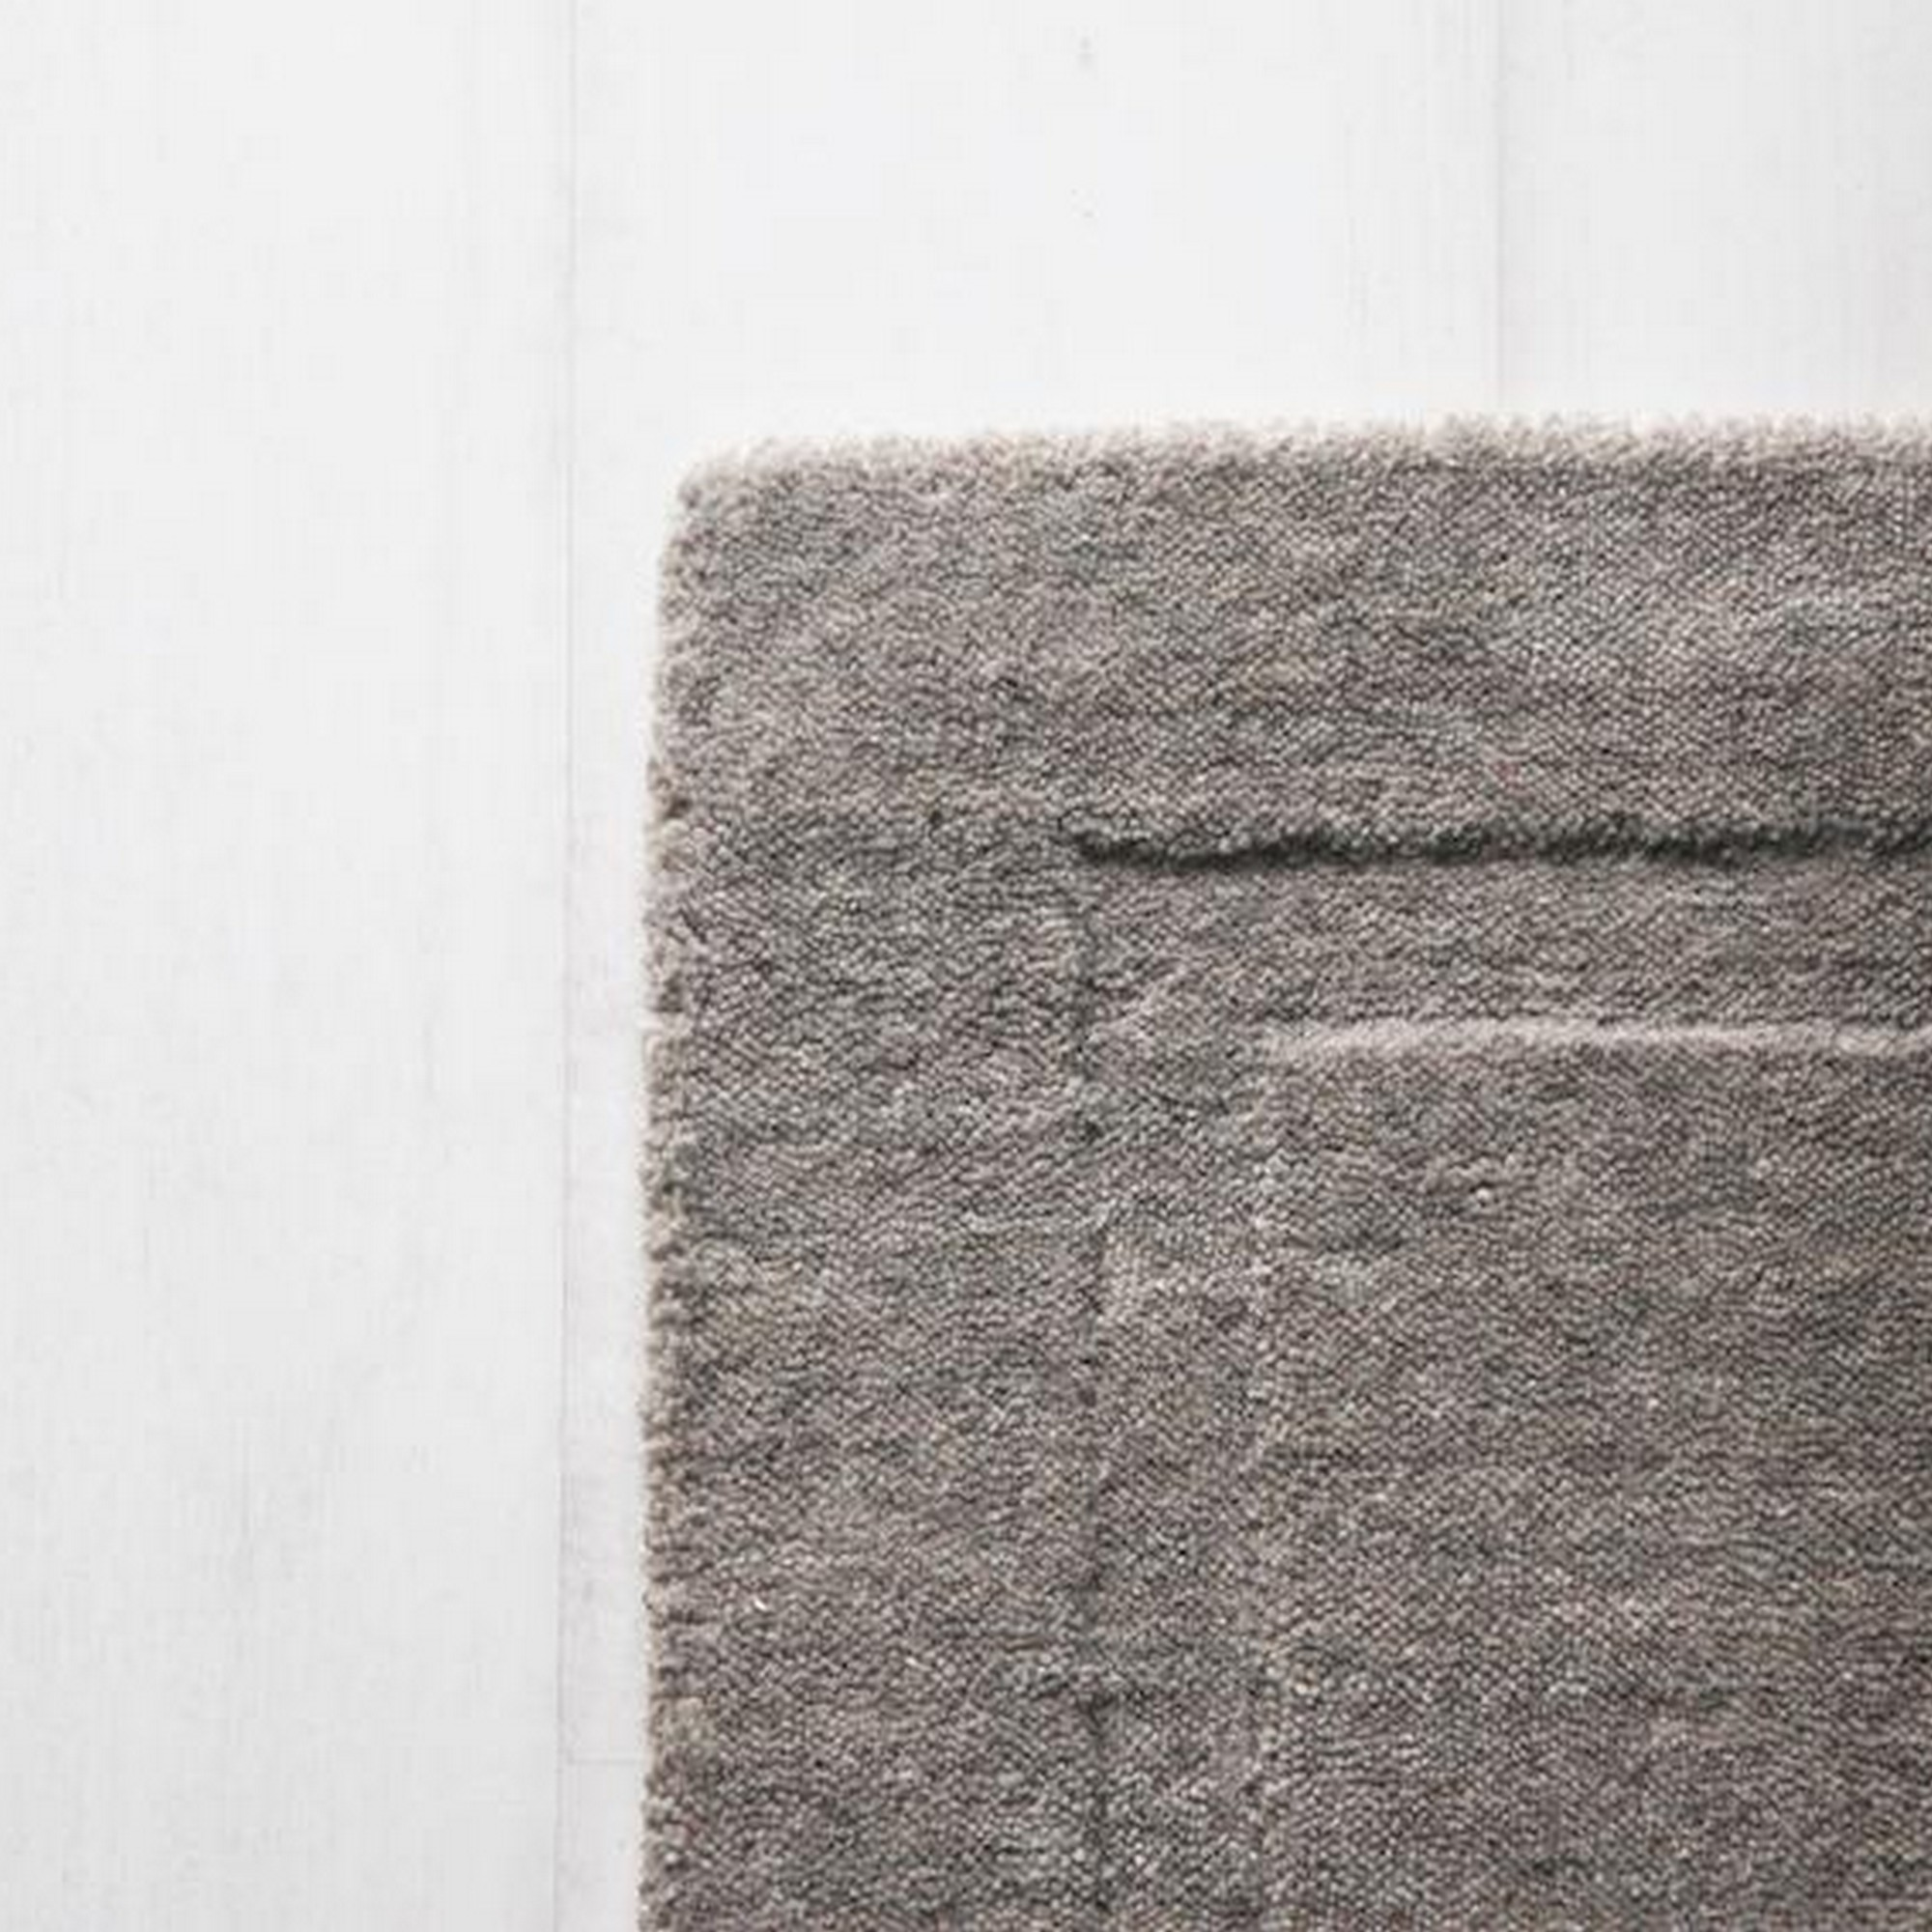 Naga Hills Rugs in Natural Marl